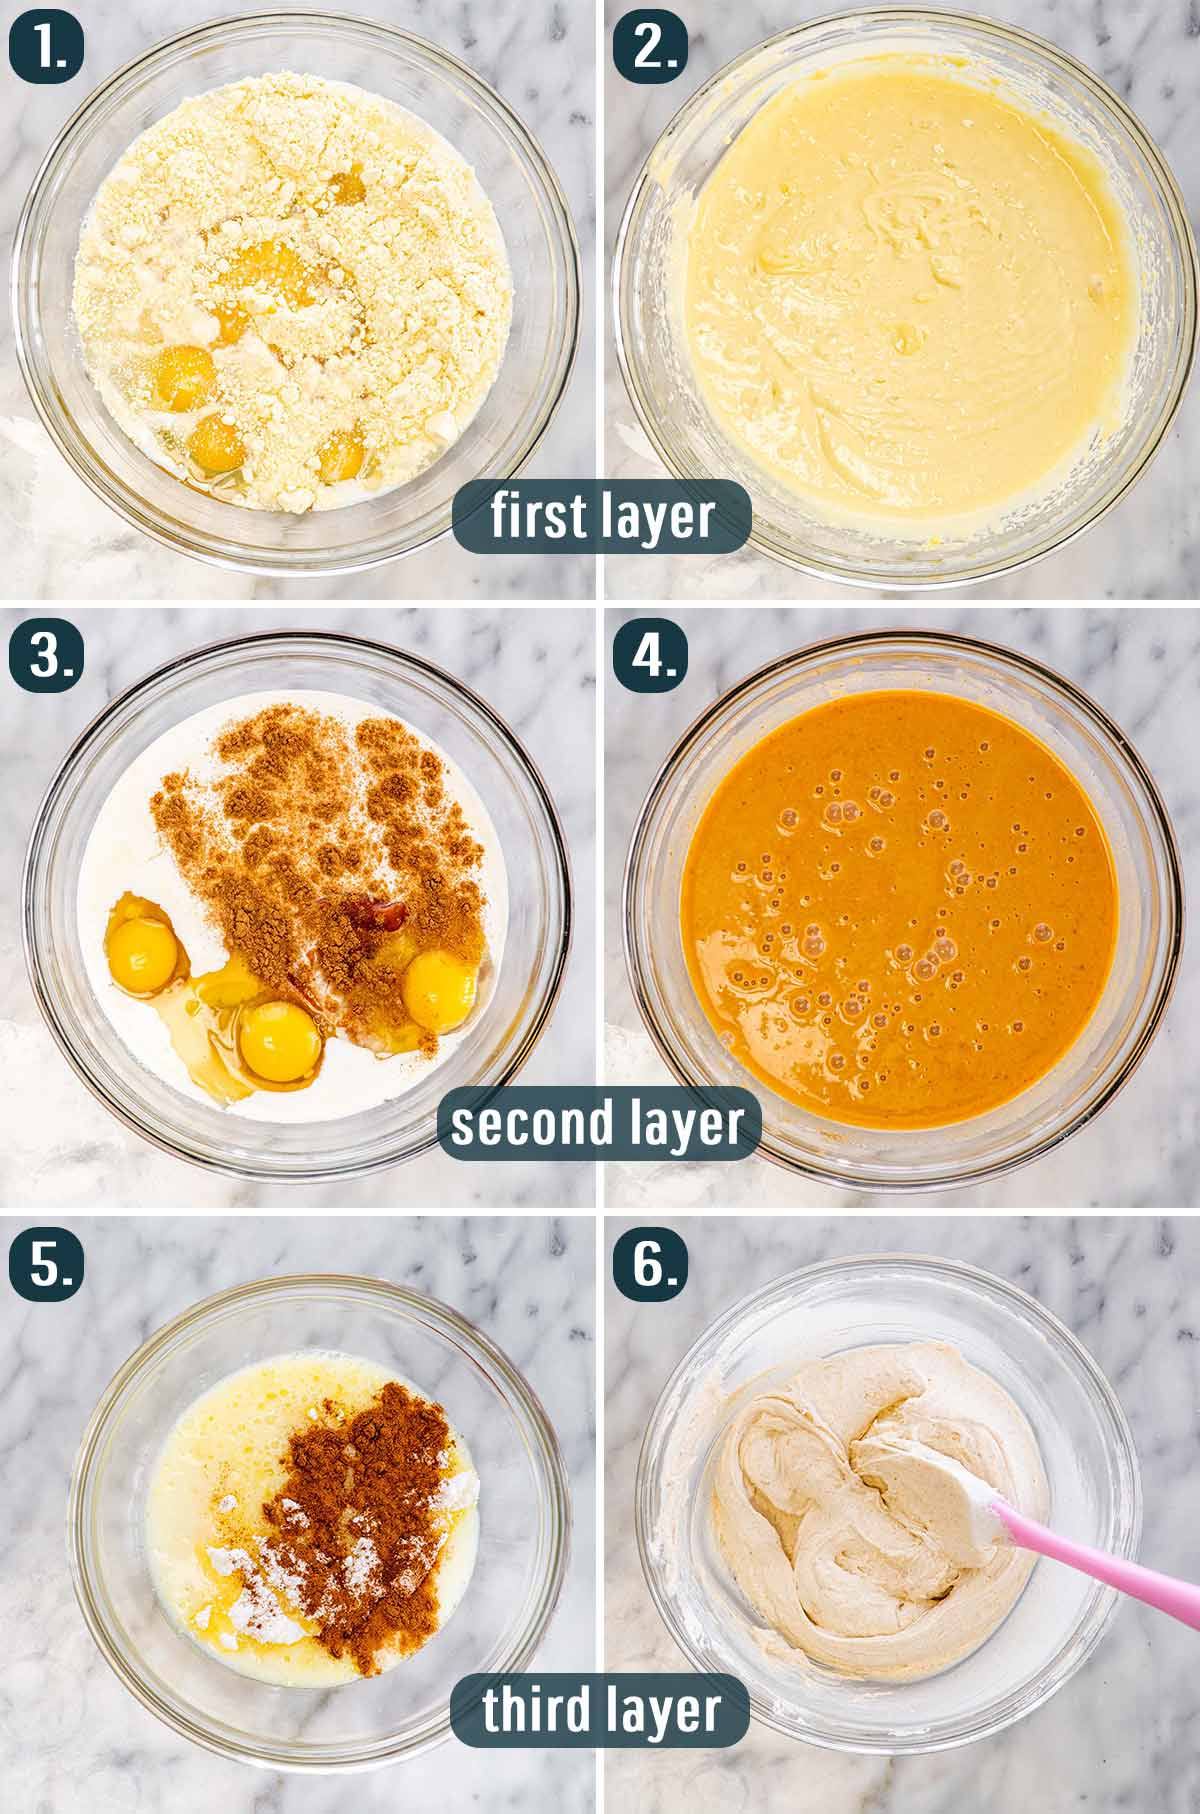 detailed process shots showing how to make the 3 layers for pumpkin magic cake.